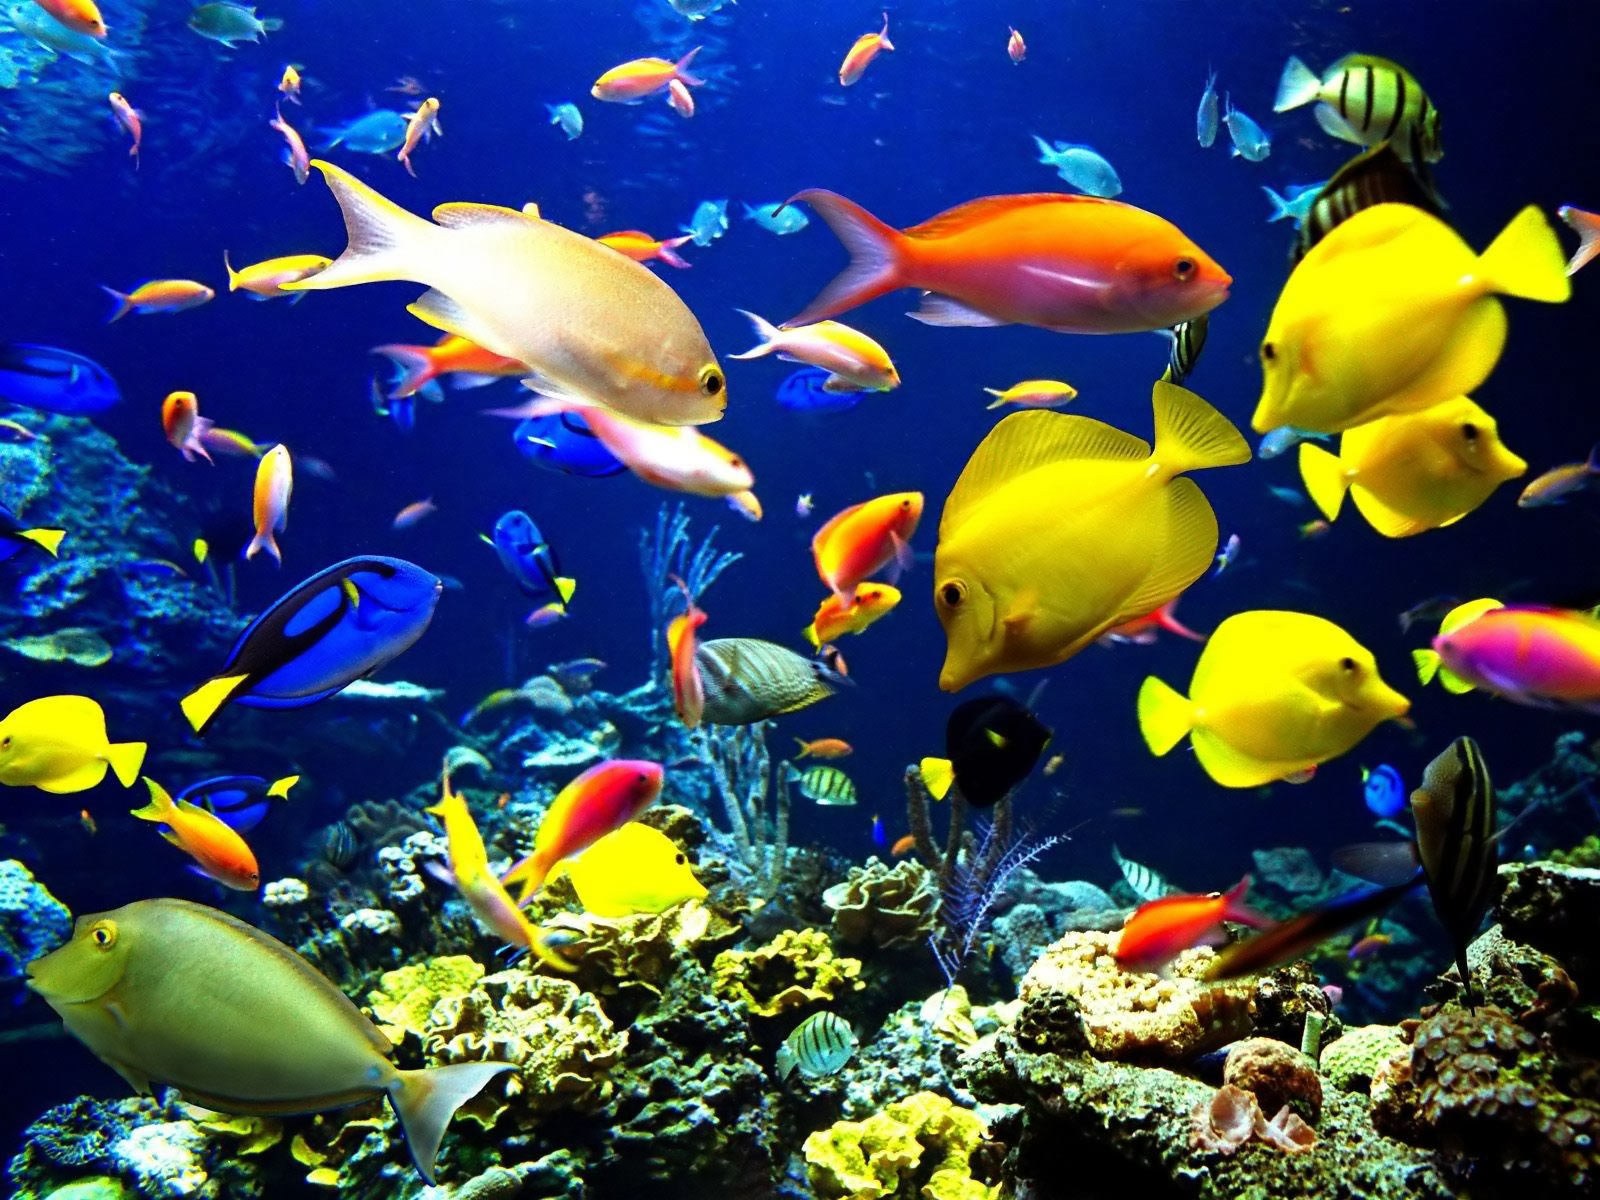 WWW Fish Wallpaper Free Download Com